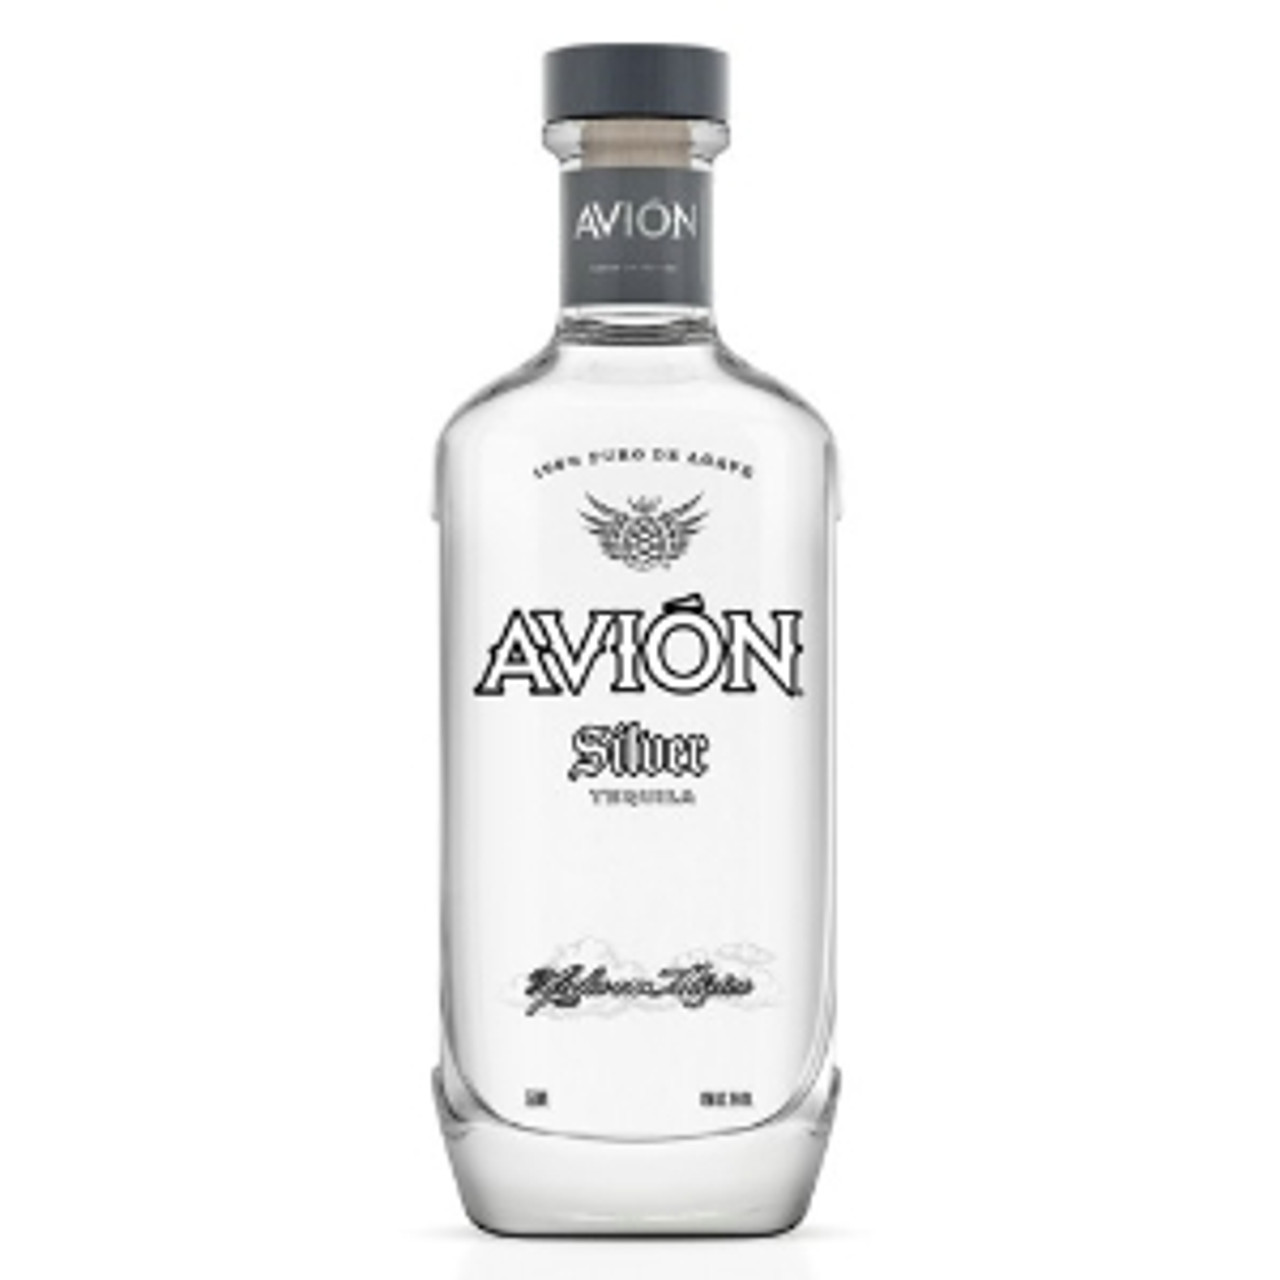 Avion Silver Tequila 375ml